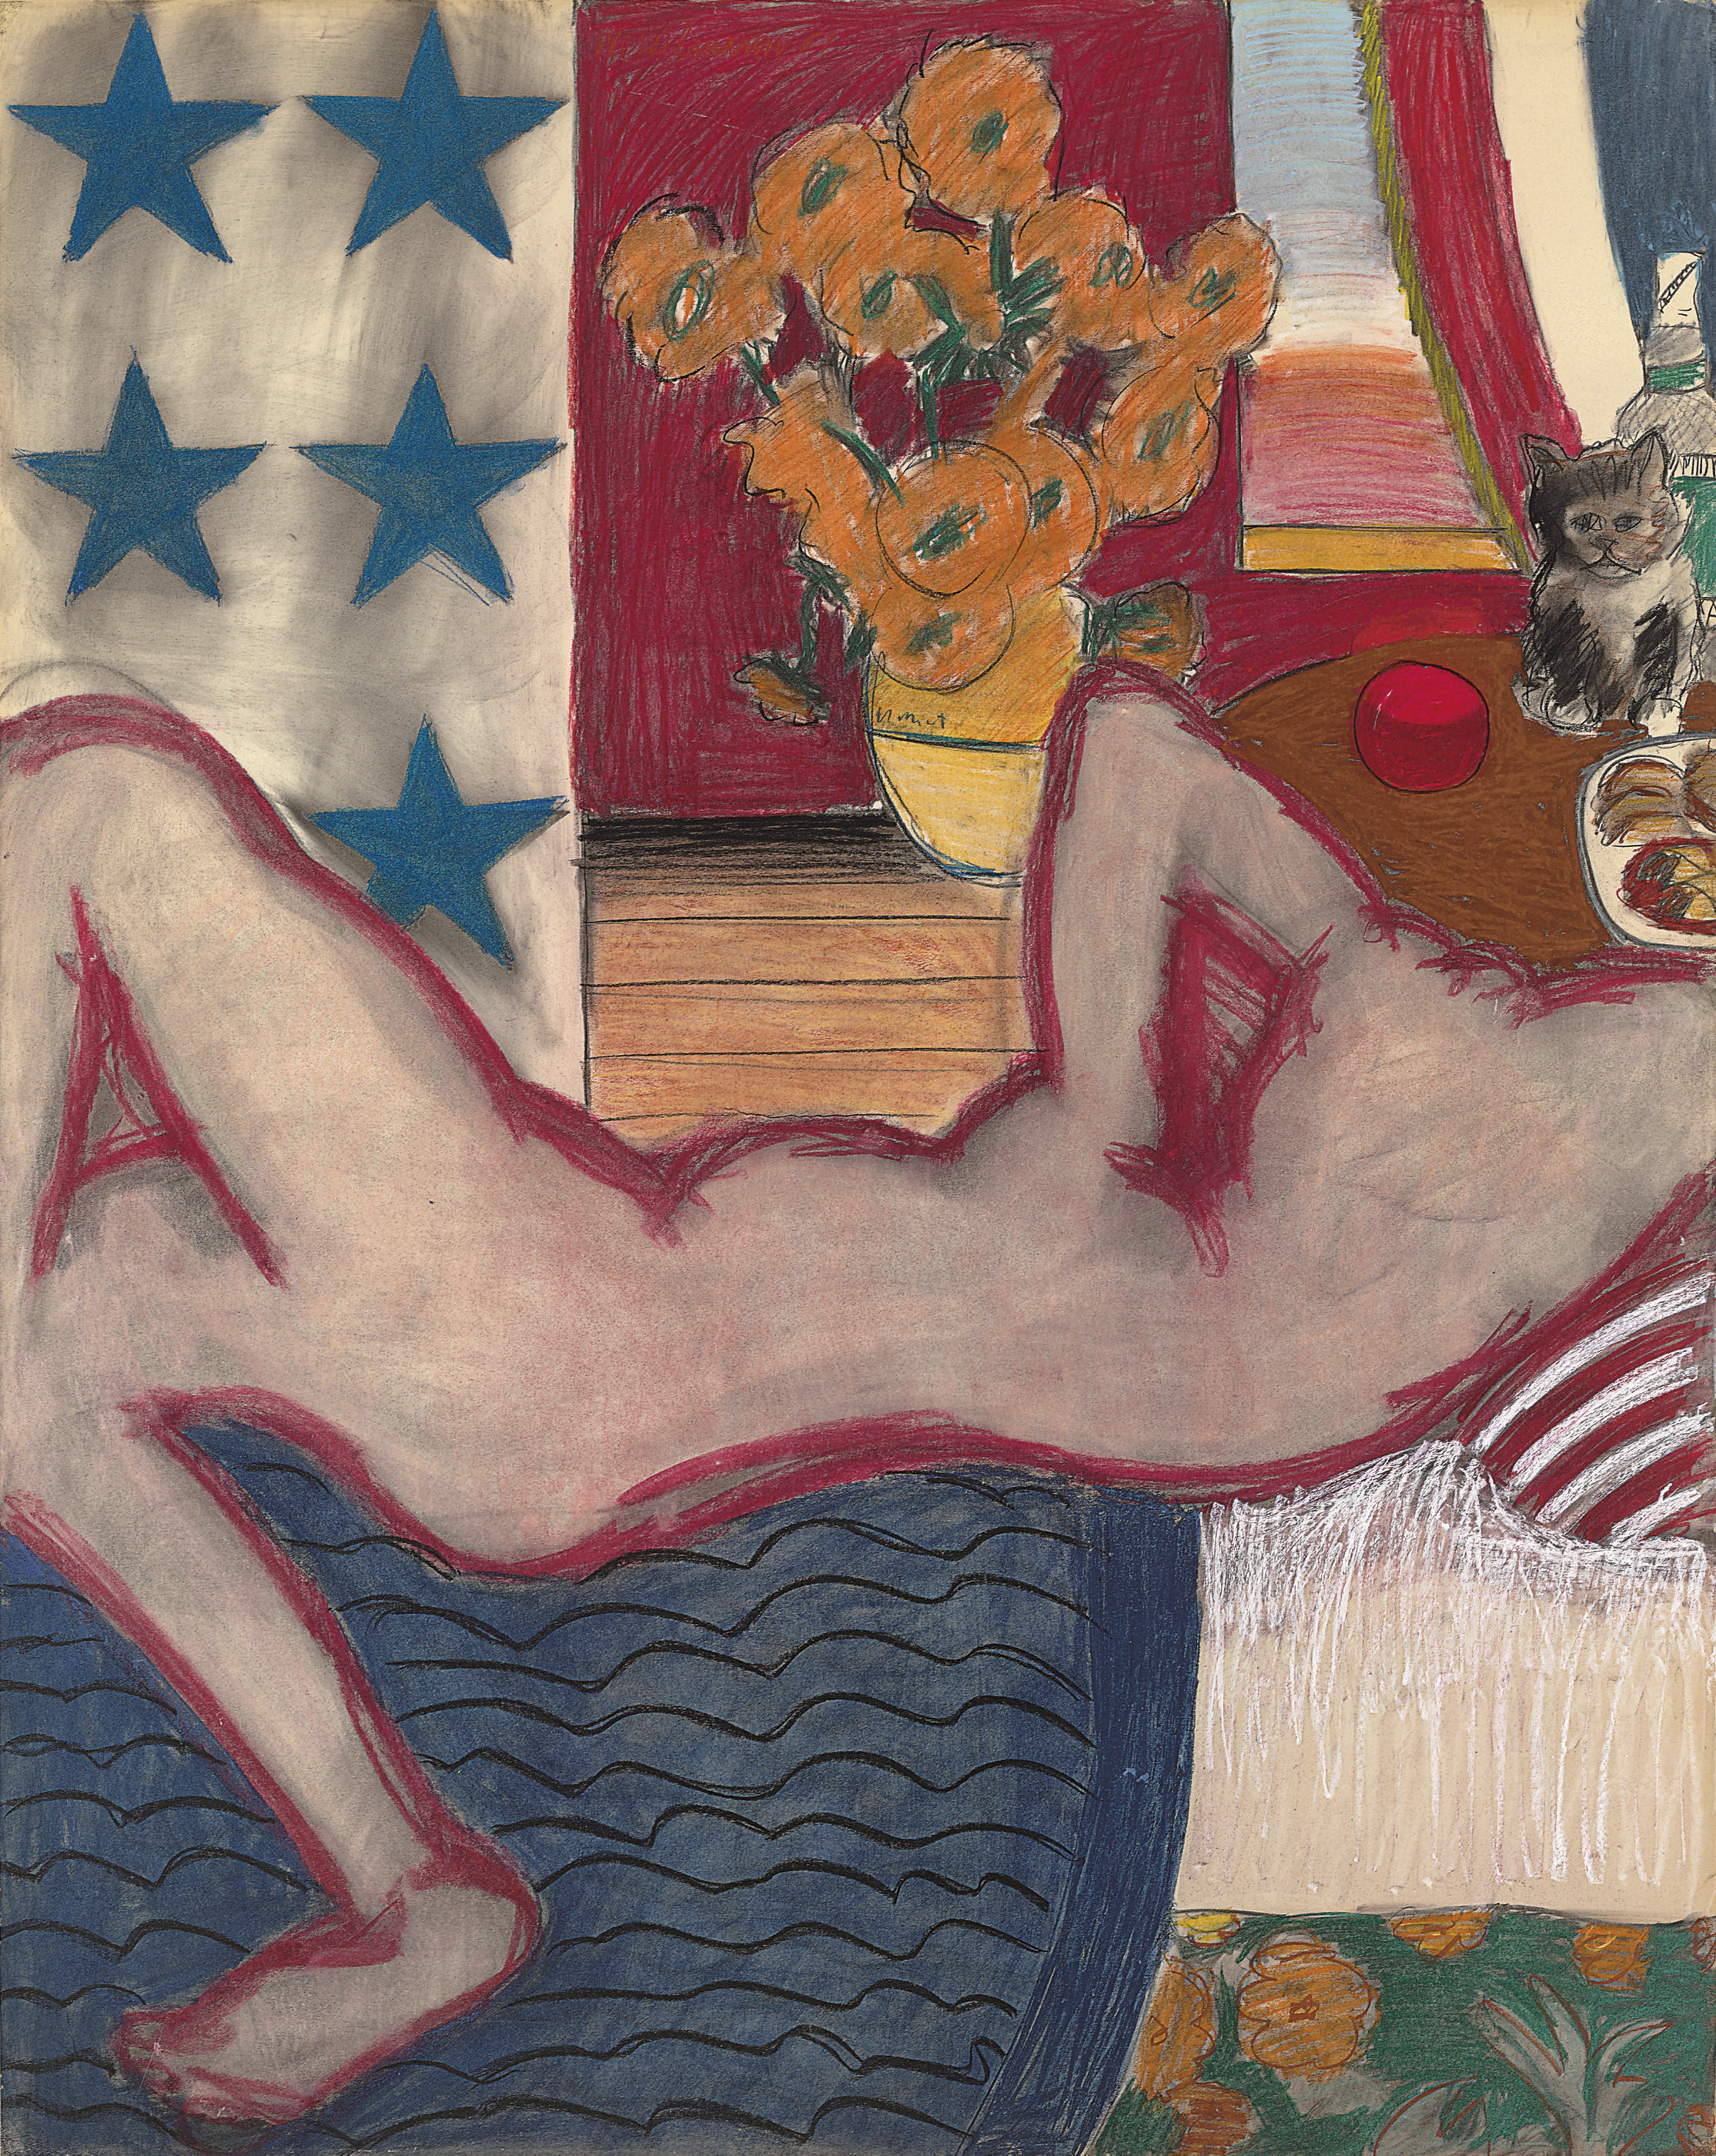 Study for Great American Nude #20